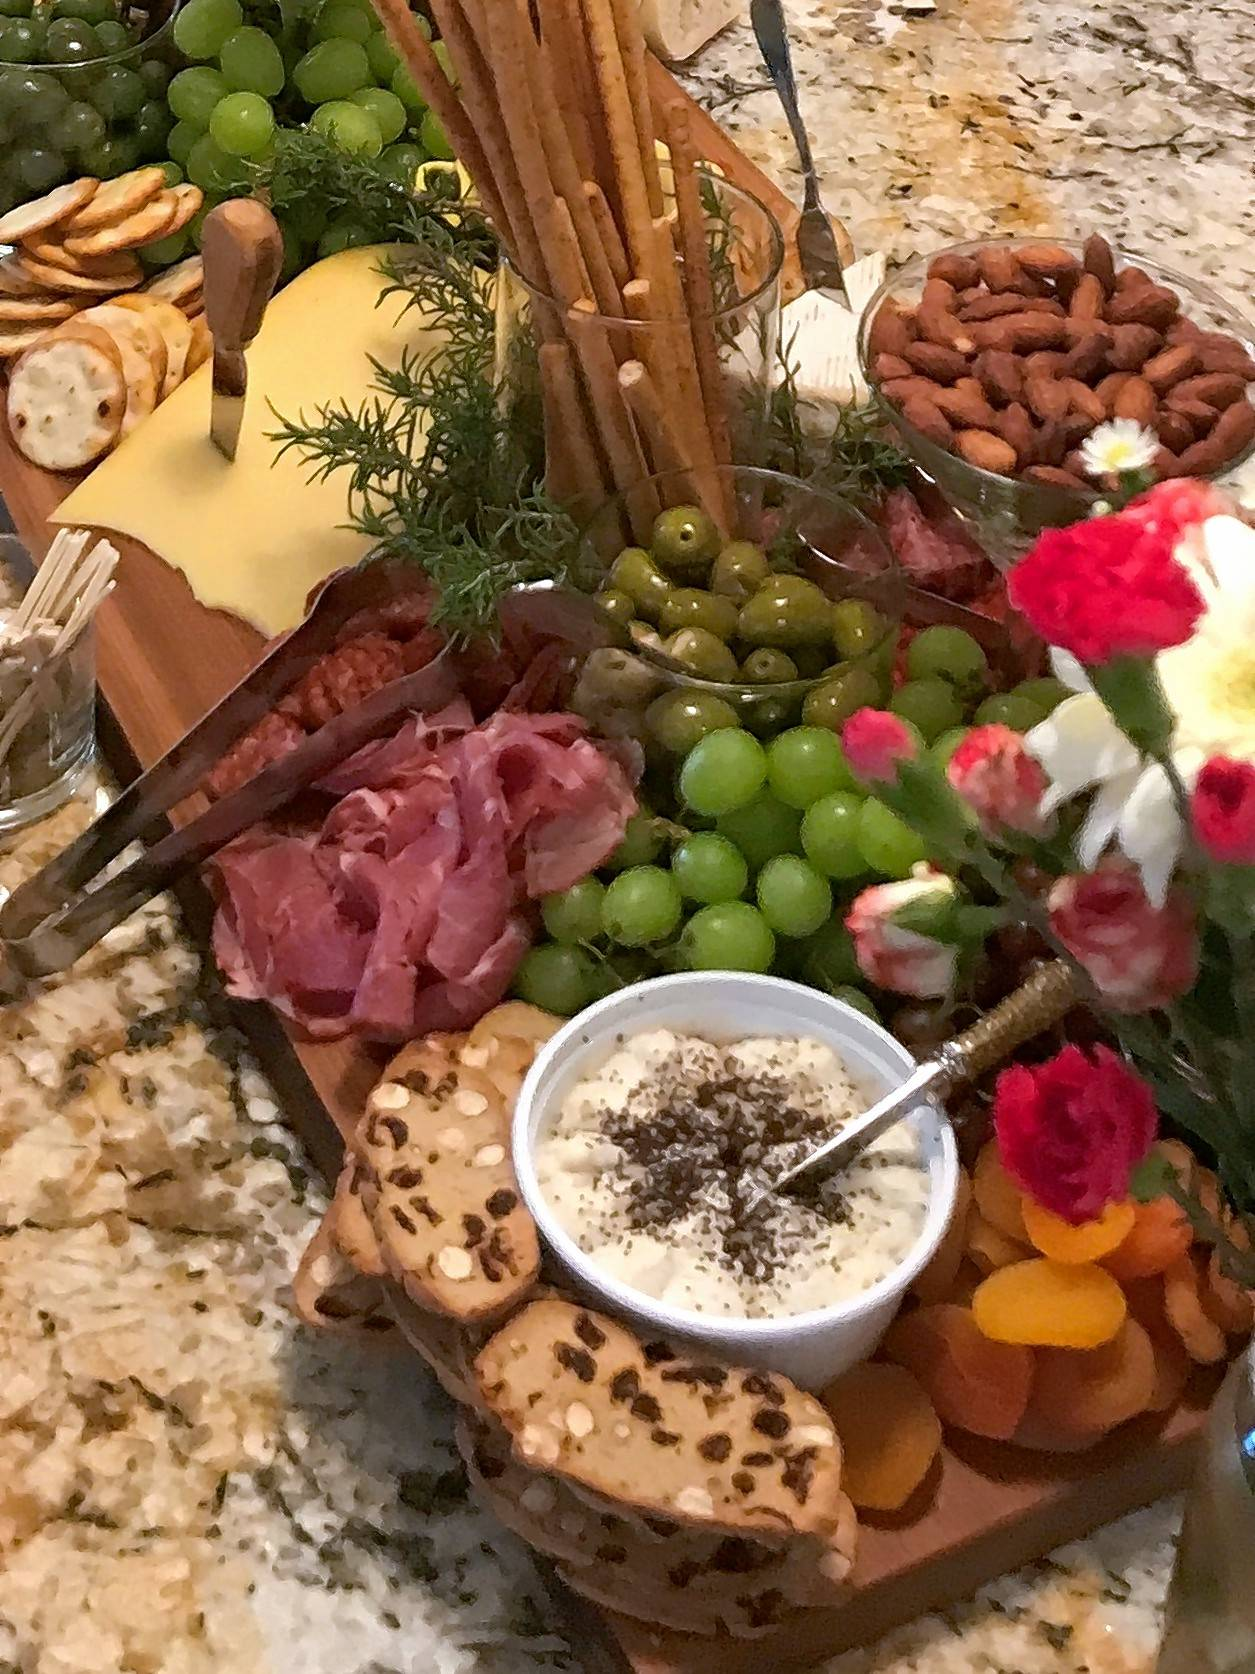 Placing fruit and nuts among the meat and cheese offerings makes for a tempting display.